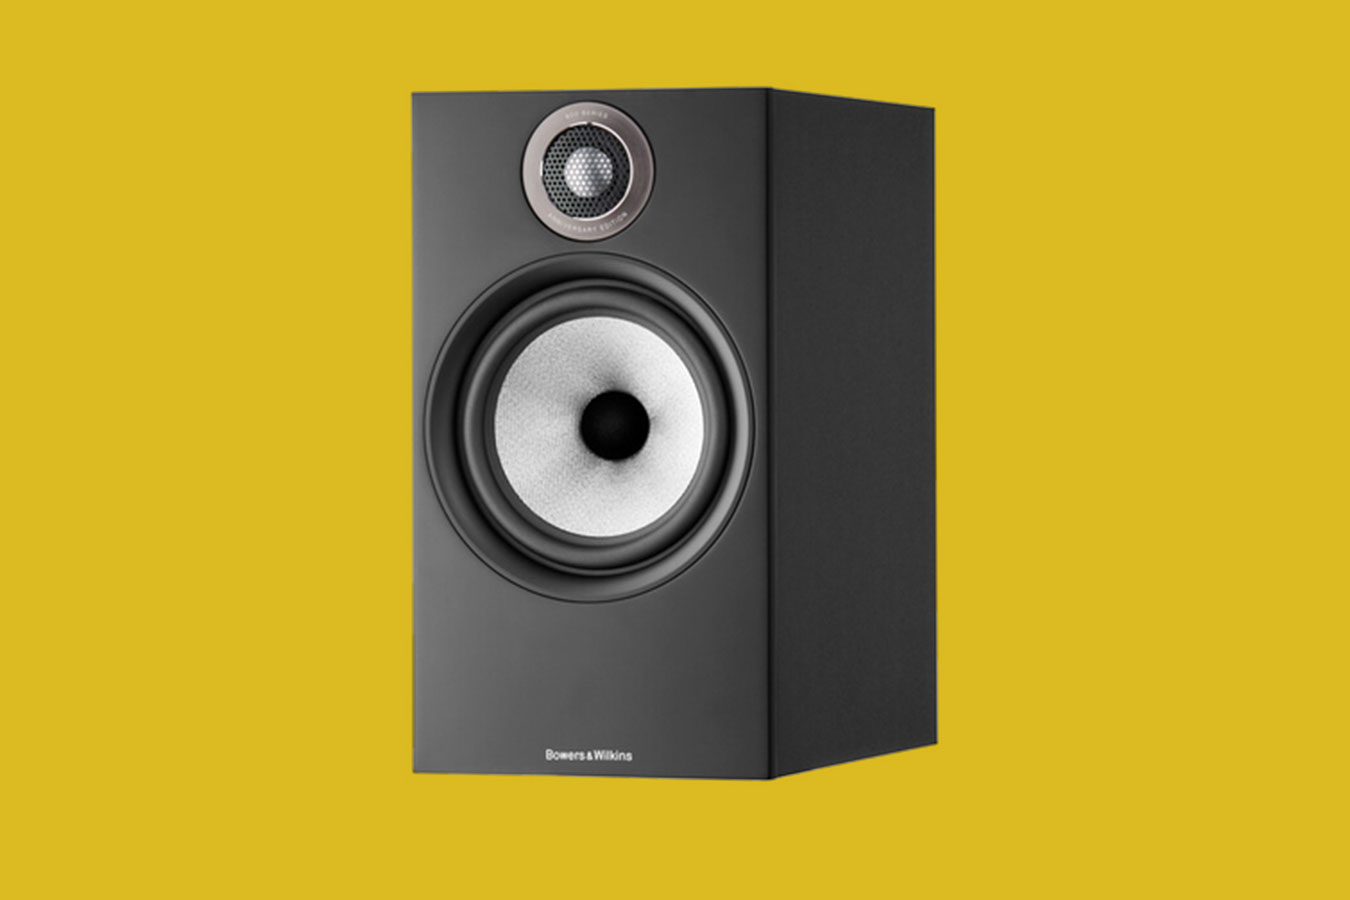 Bowers & Wilkins 606 S2 Anniversary Edition Standmount Loudspeaker